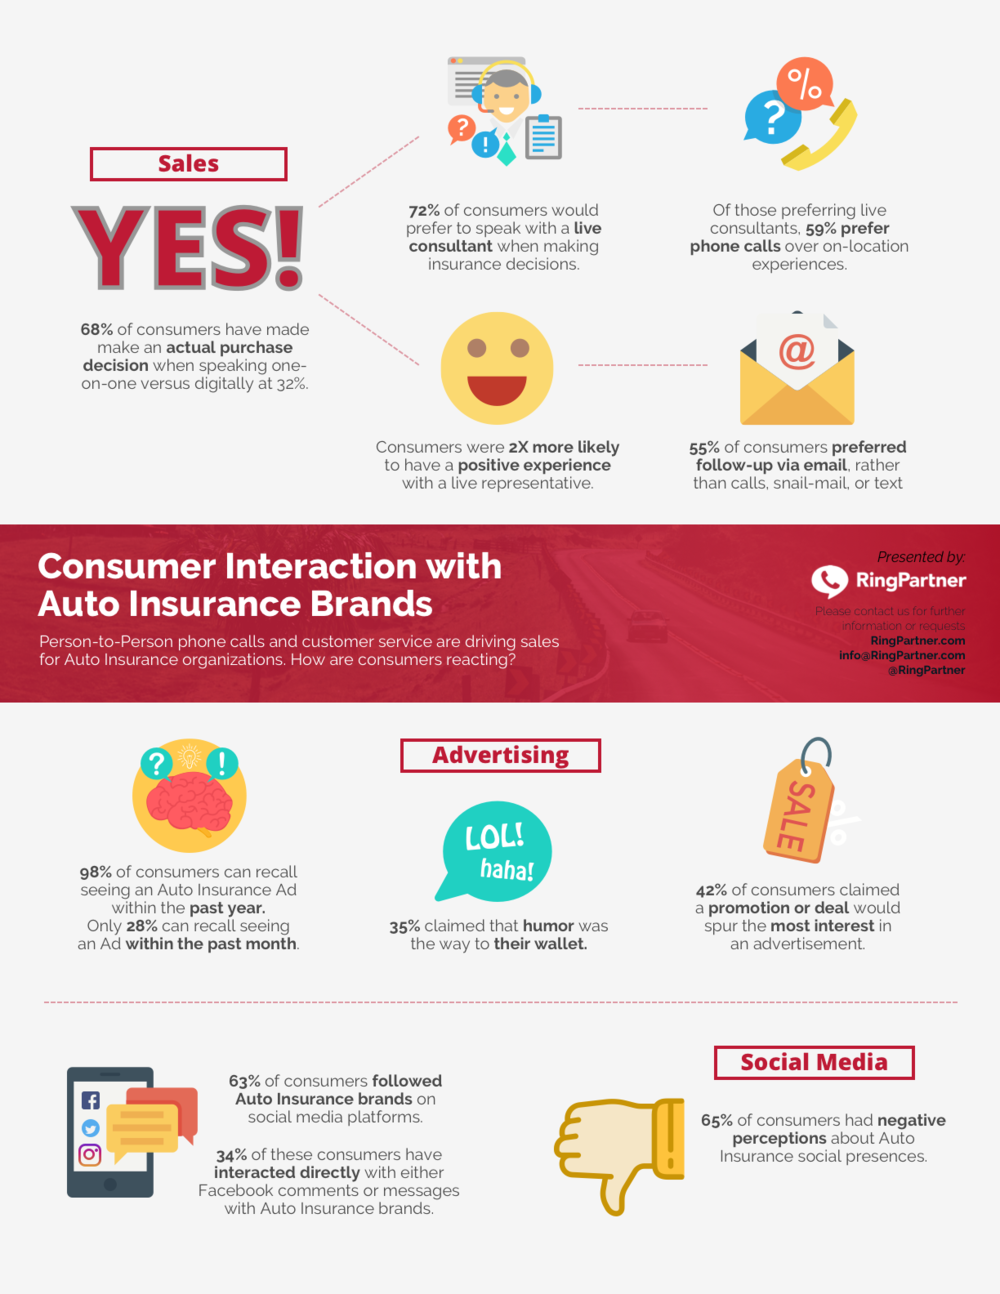 RingPartner Auto Insurance Consumer Behavior - Data Sheet.png